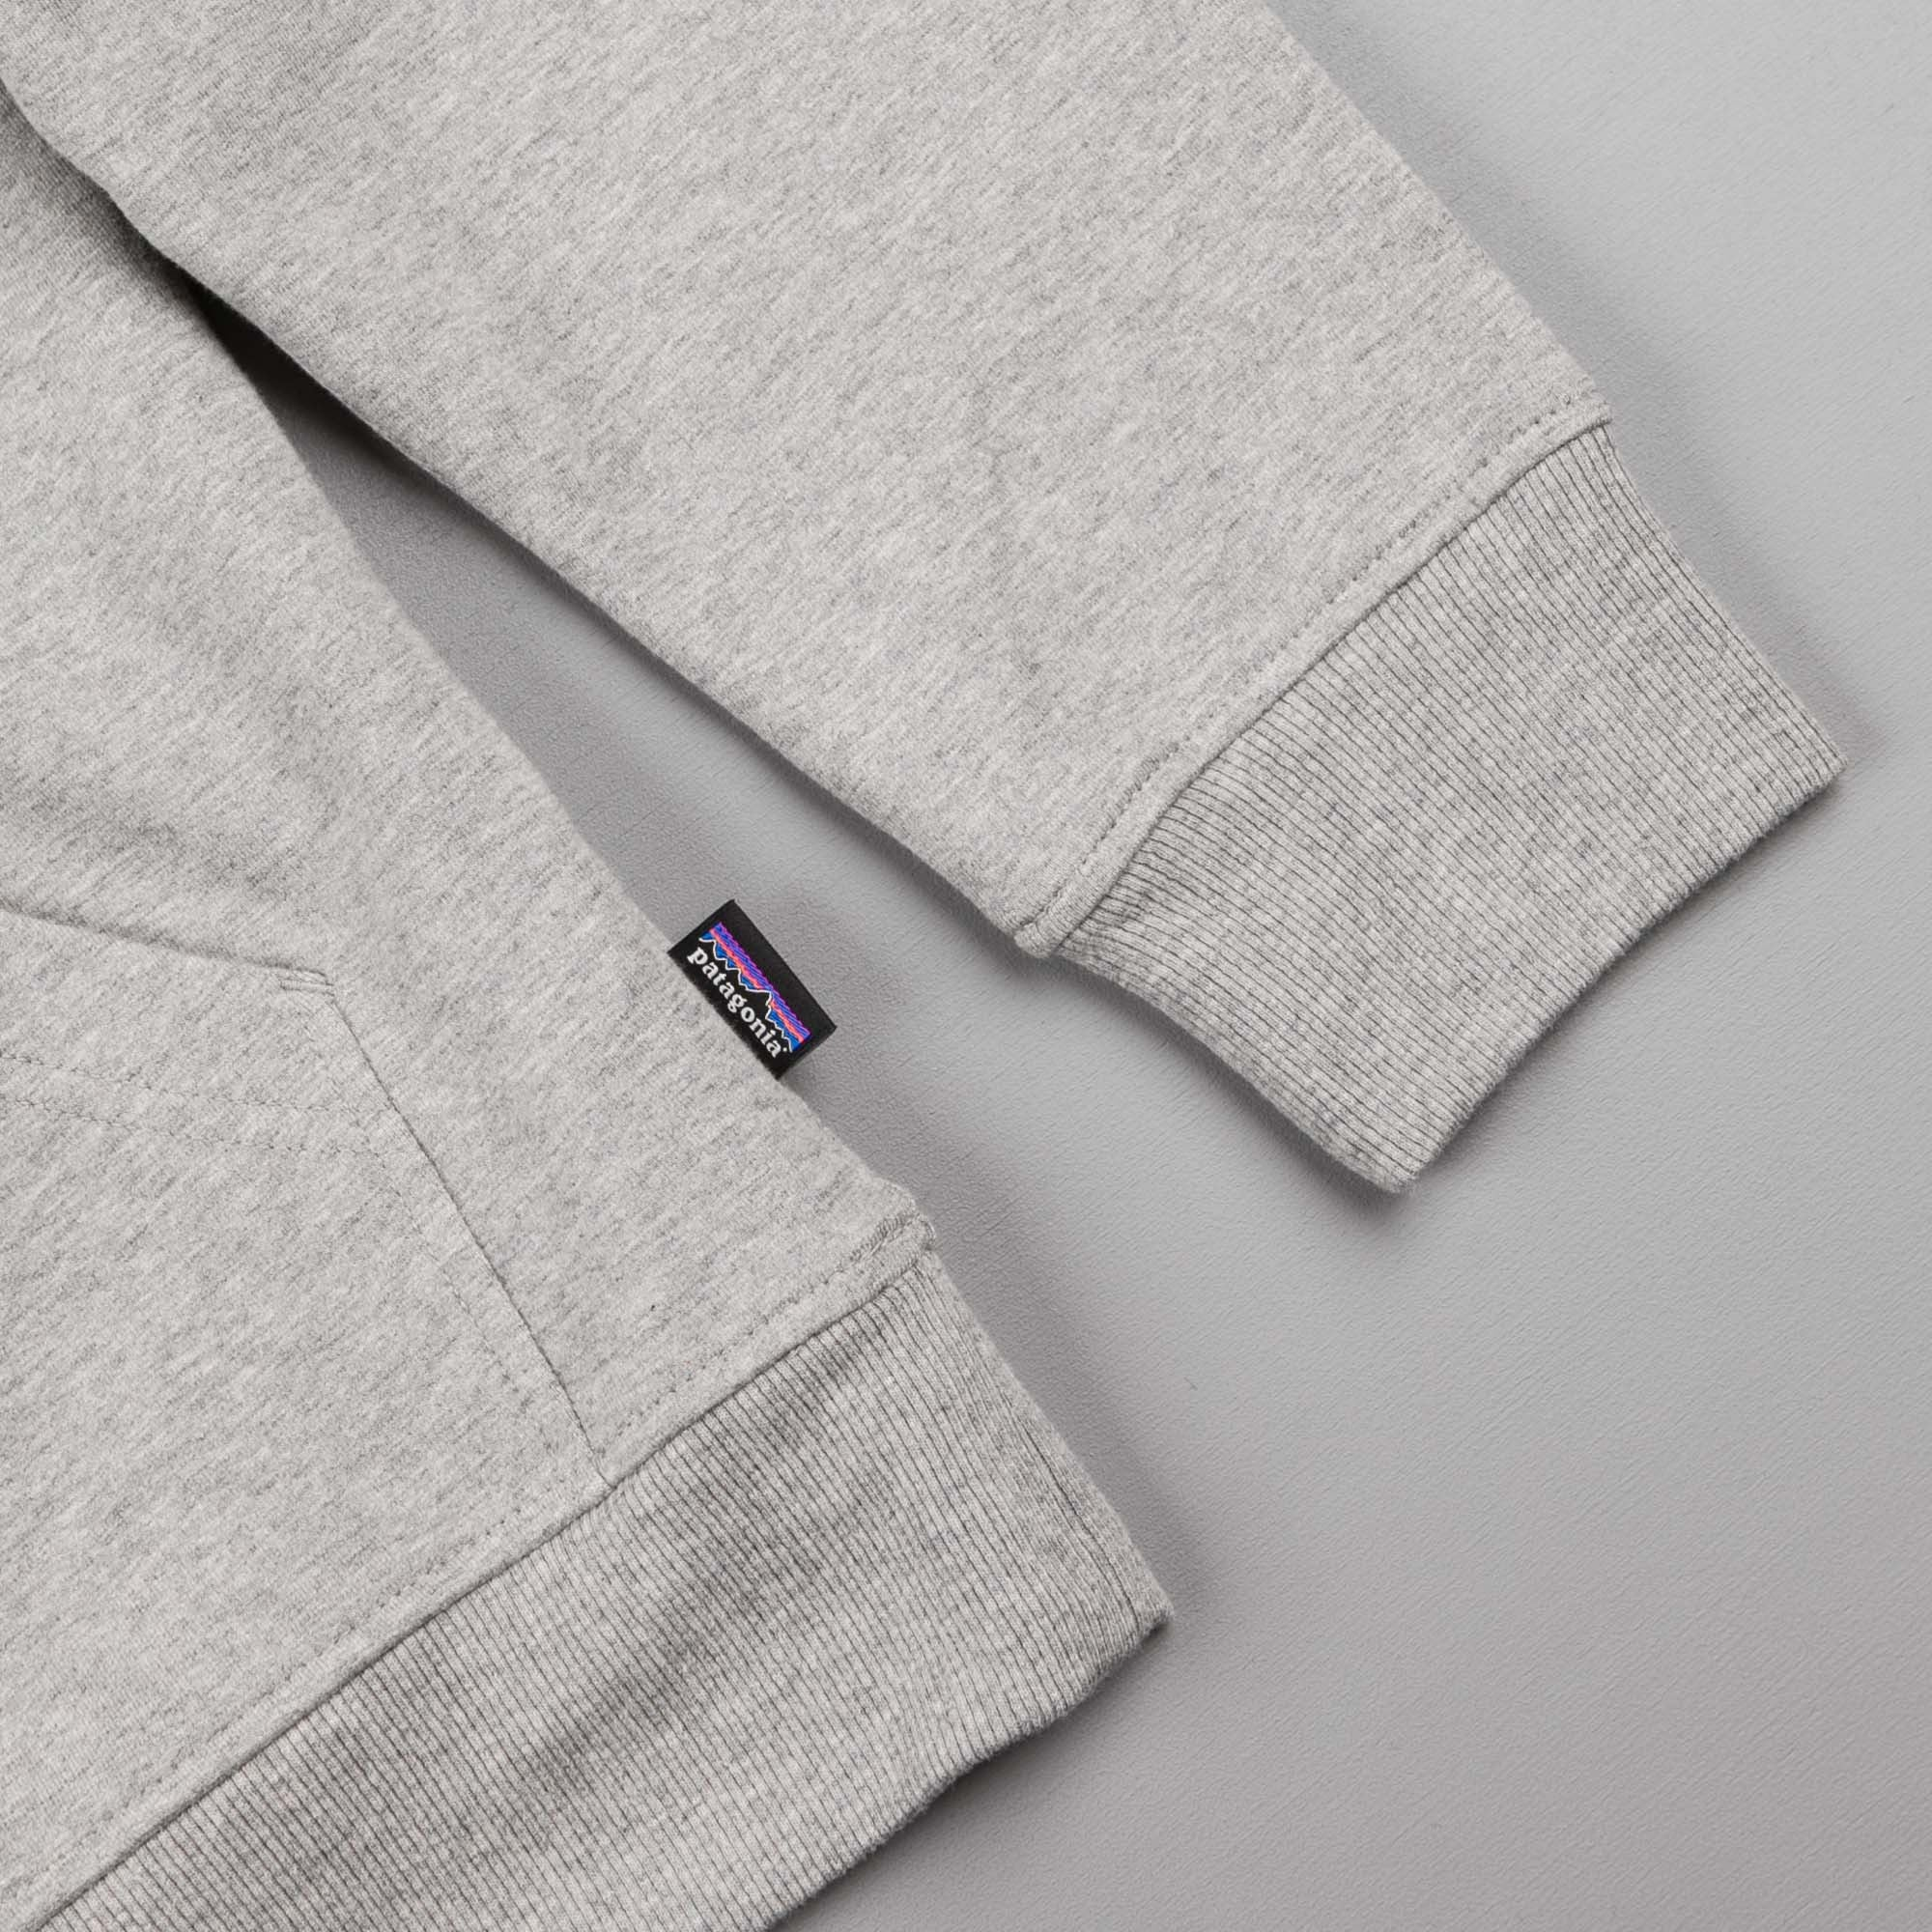 Patagonia Line Logo Hooded Sweatshirt - Feather Grey